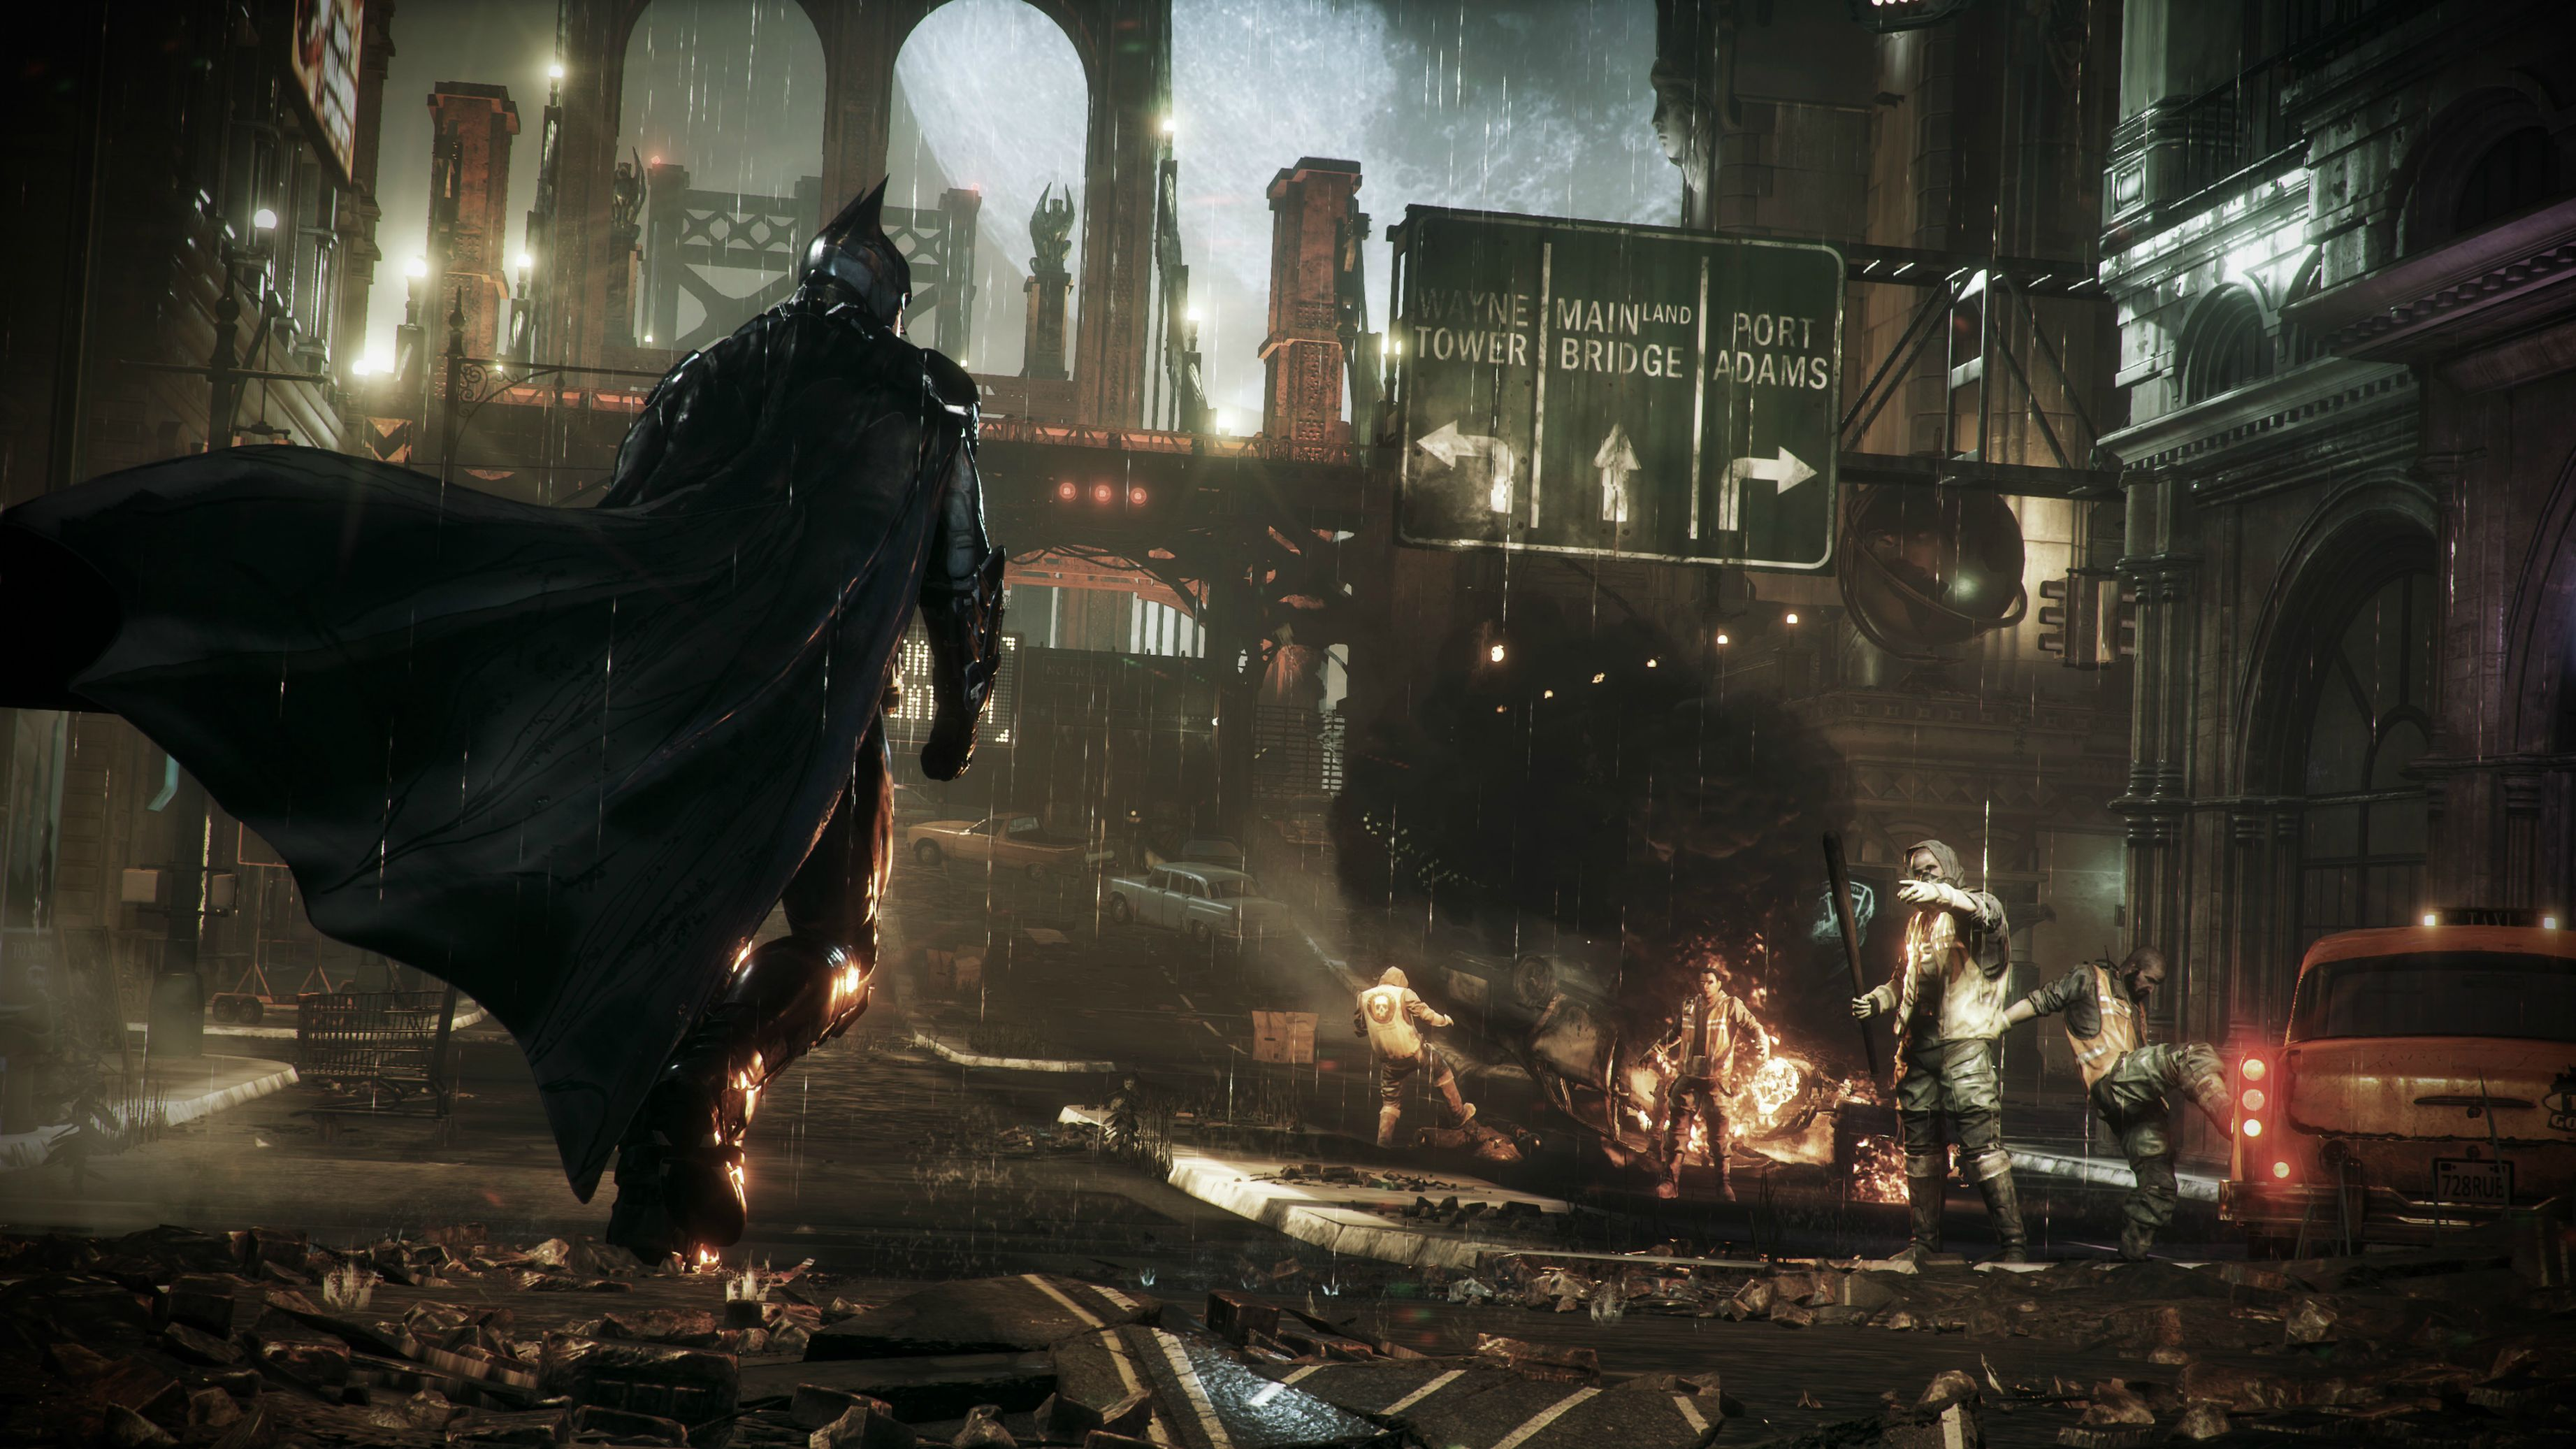 Batman Arkham Knight 4K